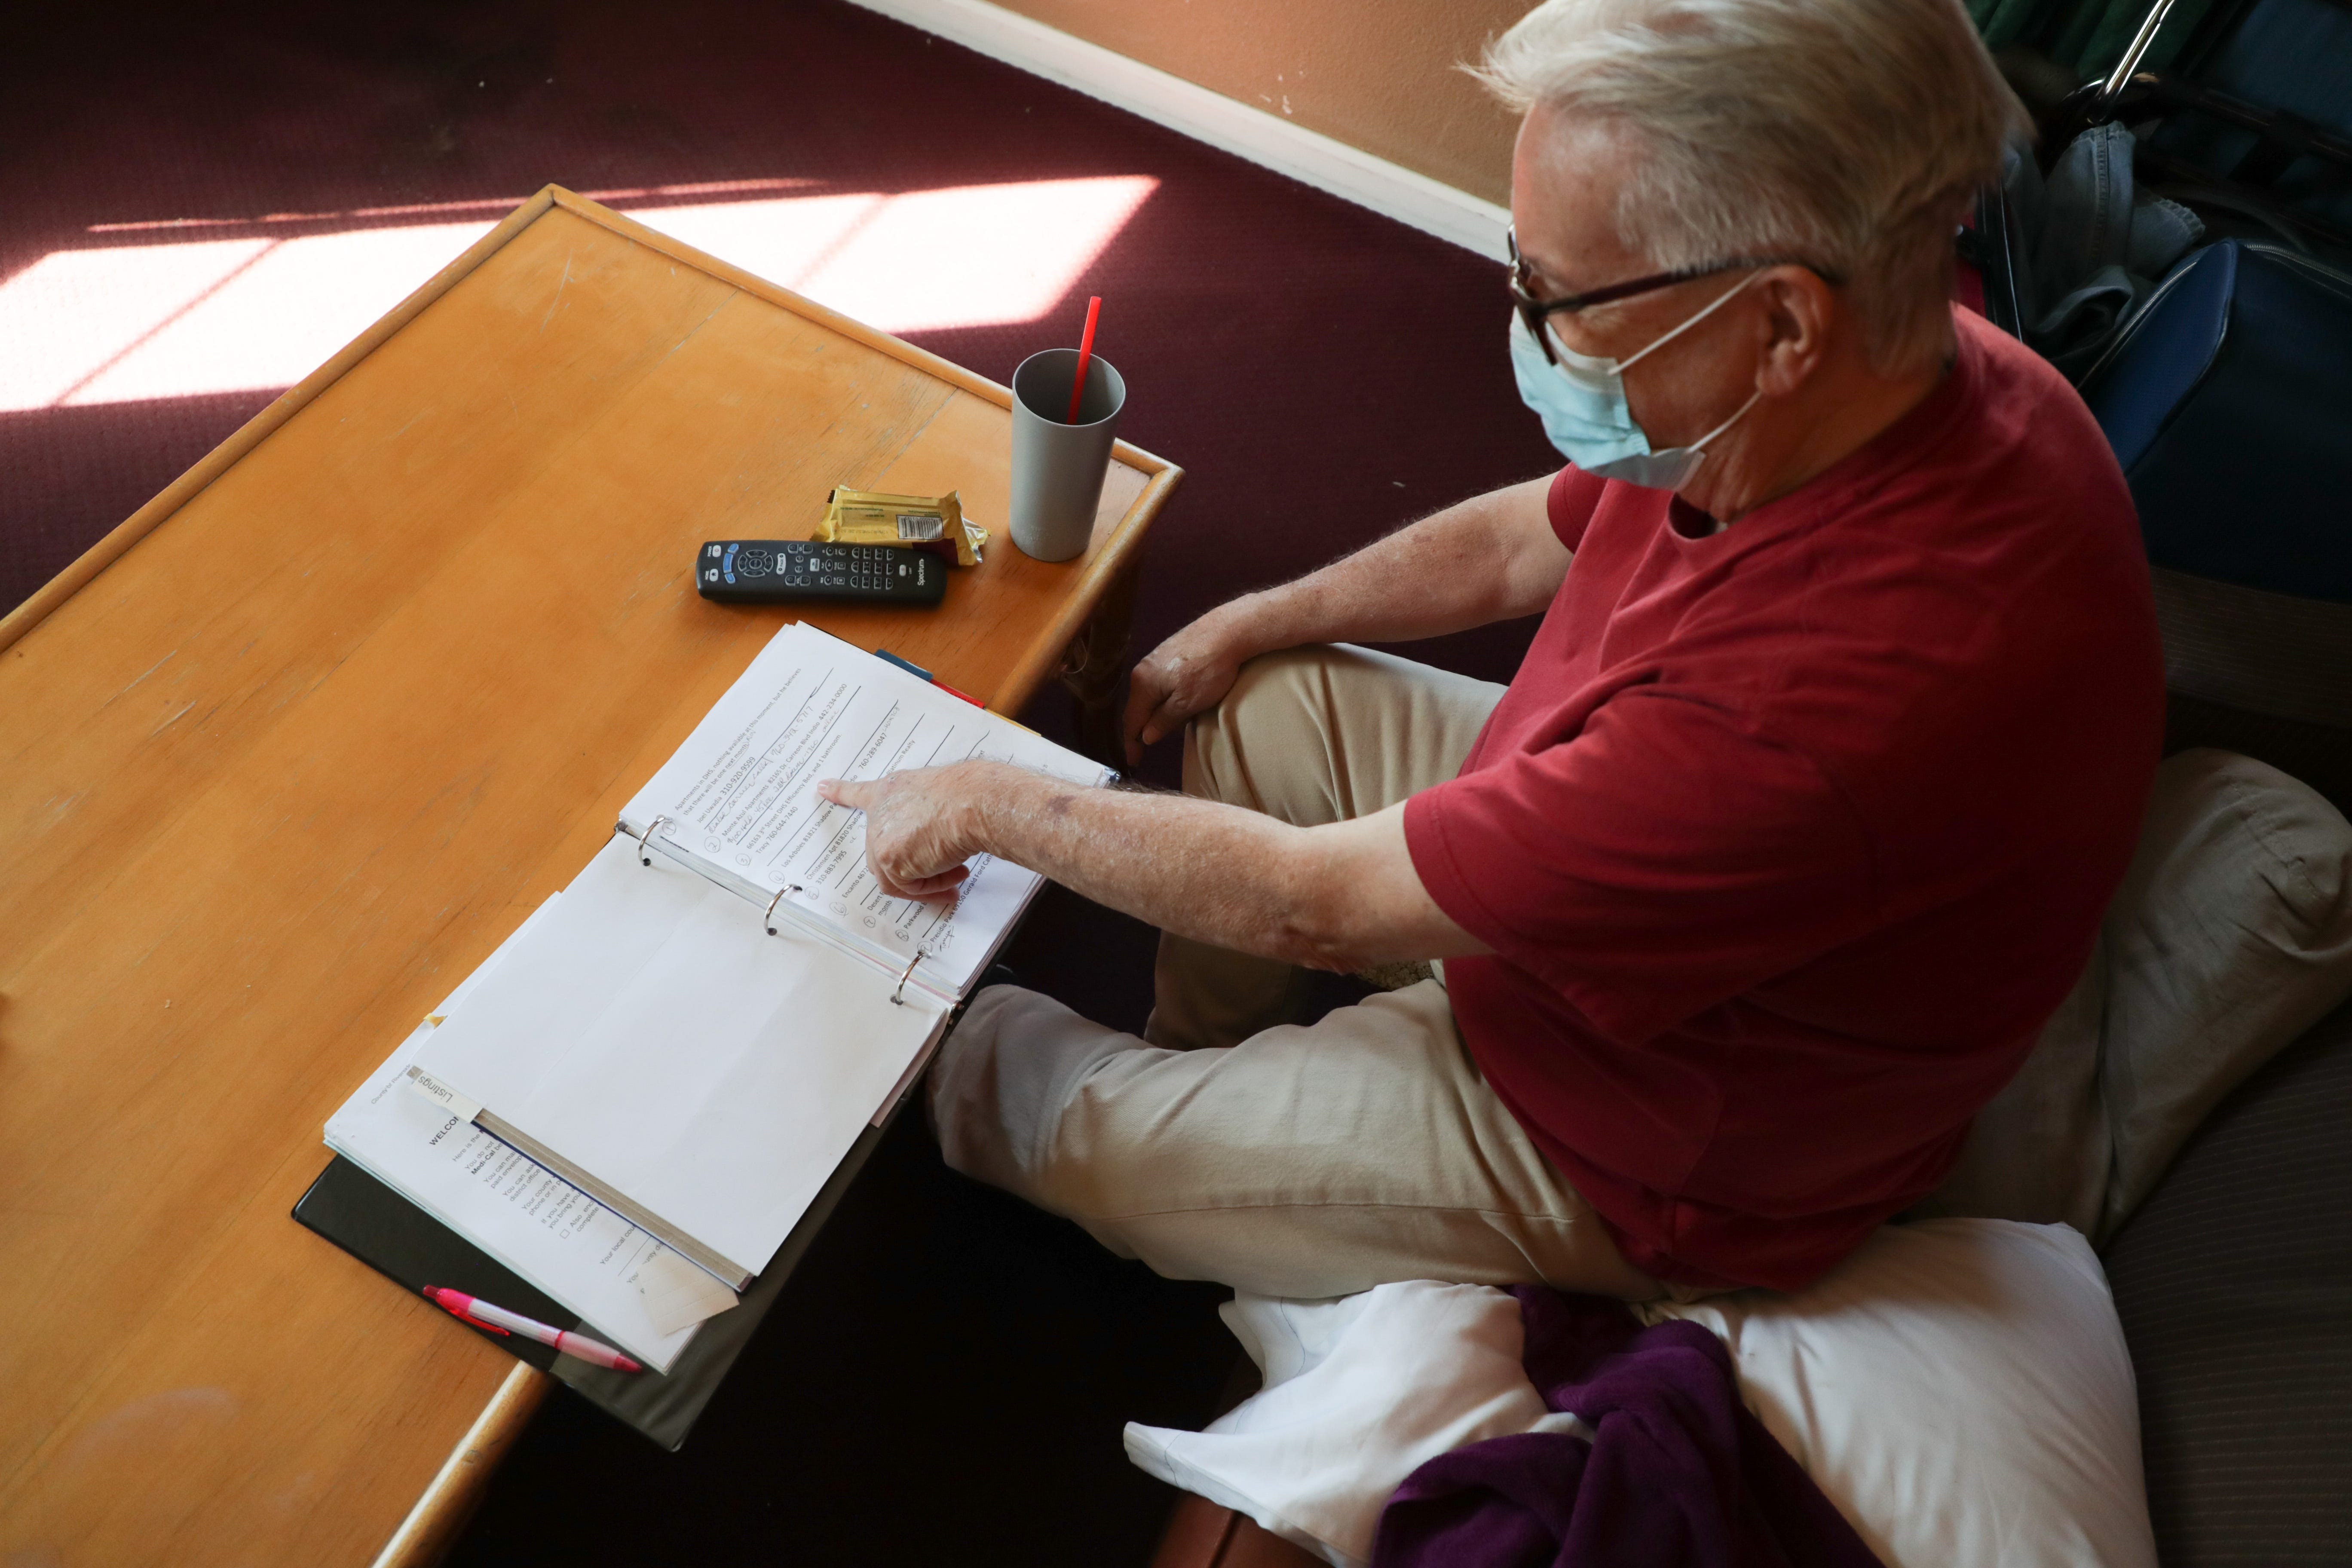 Lee Fournier sorts through a binder with potential housing options in his hotel room provided by Project Roomkey on Sunday, October 11, 2020, at Rodeway Inn & Suites in Indio, Calif. Project Roomkey is an effort by the state to house individuals experiencing homelessness during the COVID-19 pandemic.